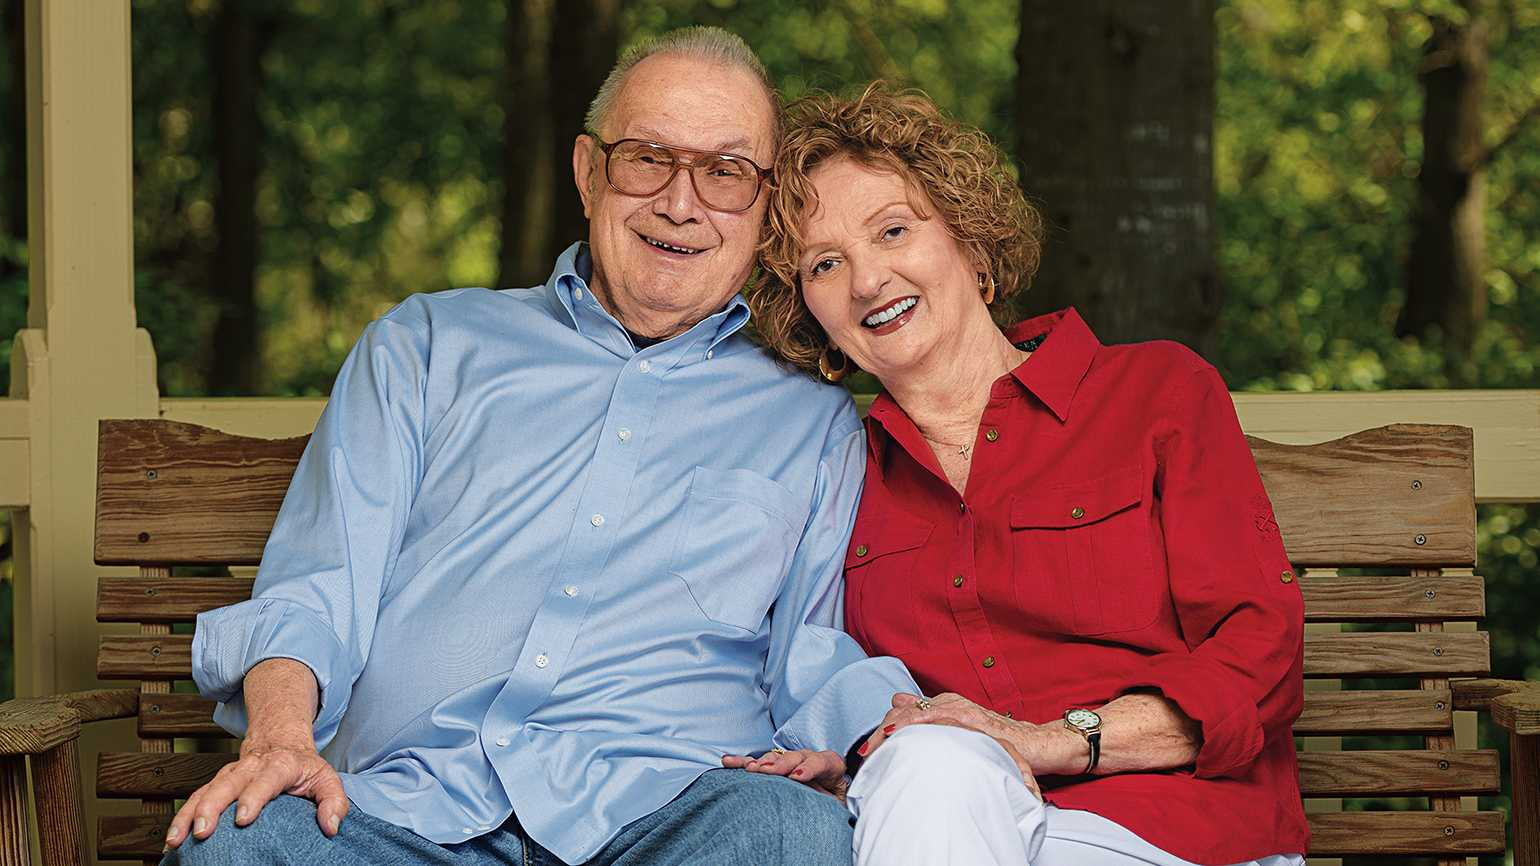 Marion and Gene revisited the things that made them each fall in love.